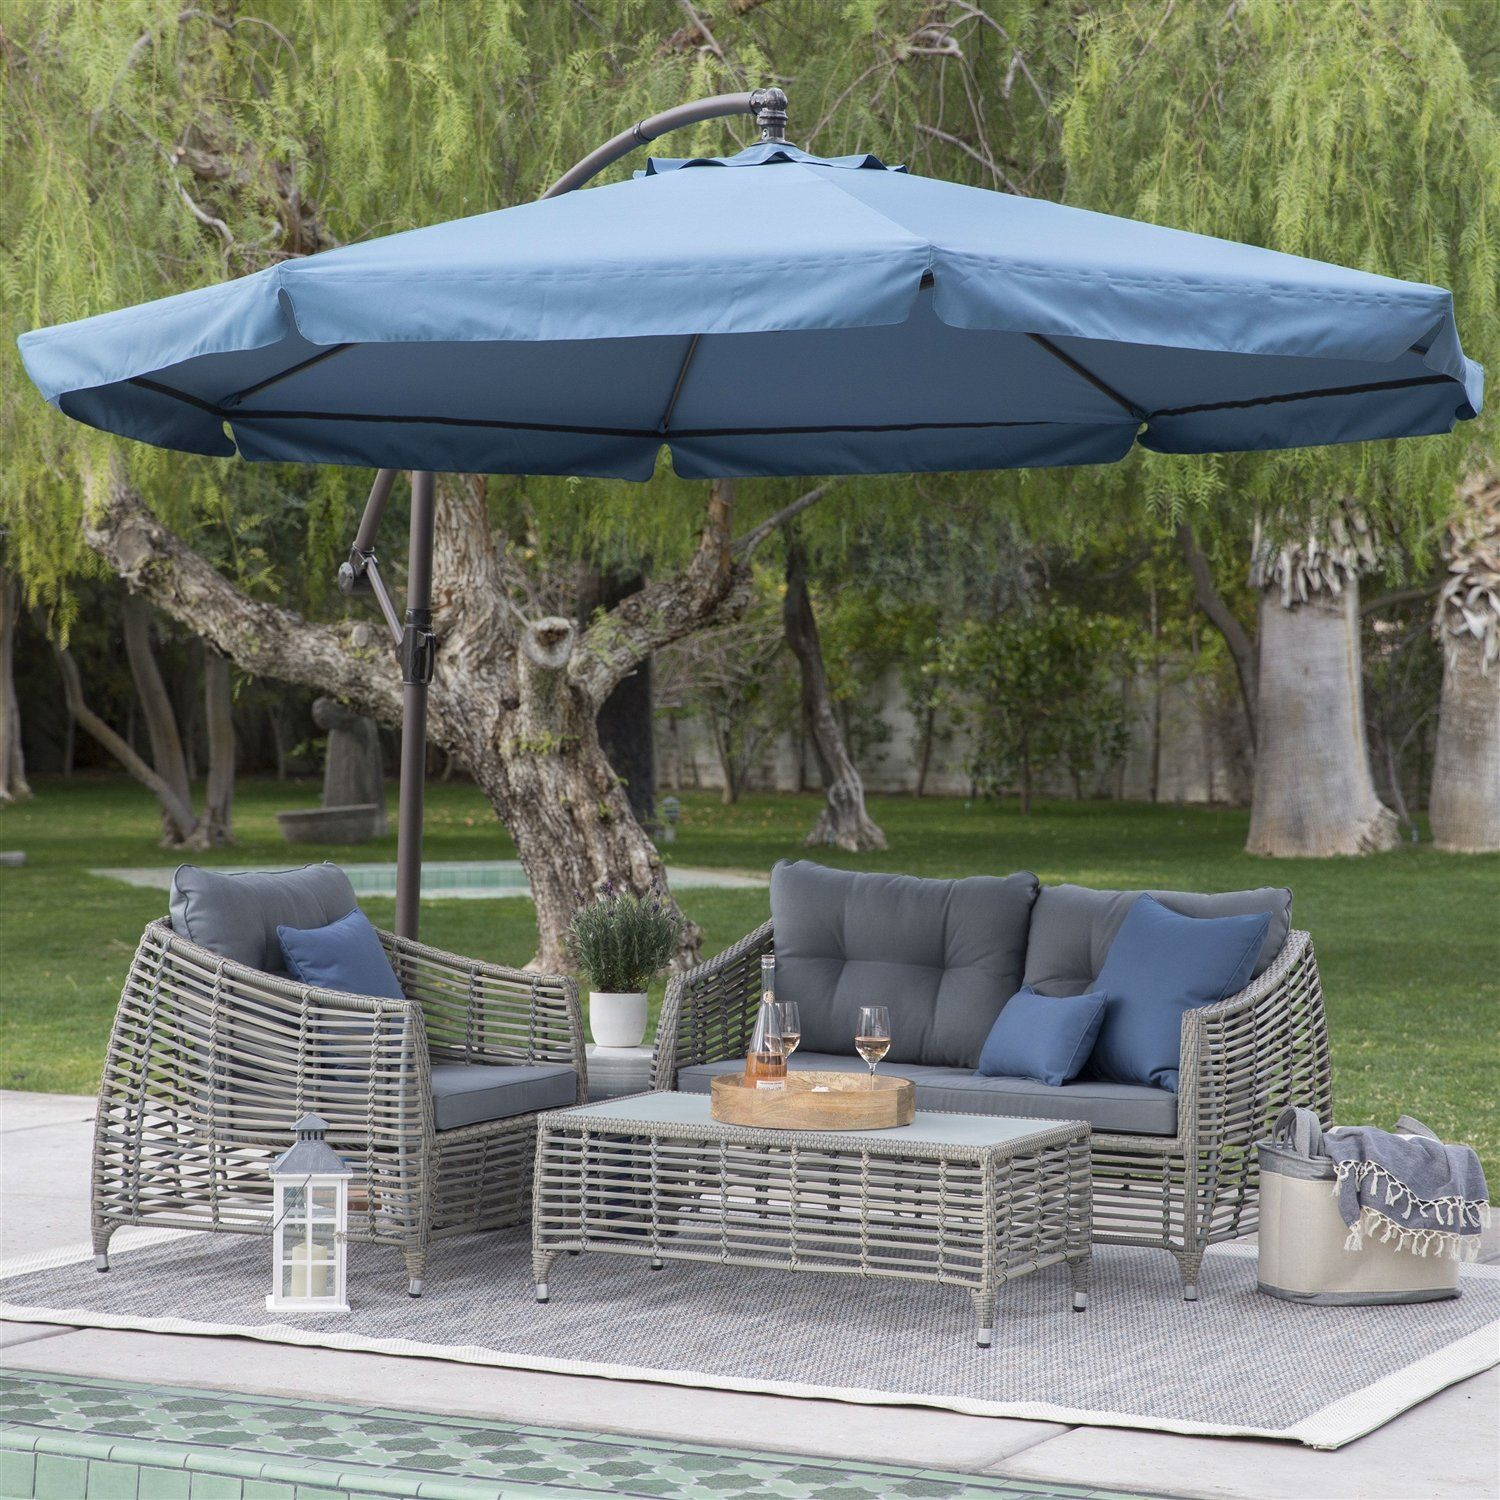 Navy Blue 11 Ft Offset Steel Patio Umbrella Gazebo Canopy With Removable Mosquito Netting Patio Gazebo Canopy Pergola